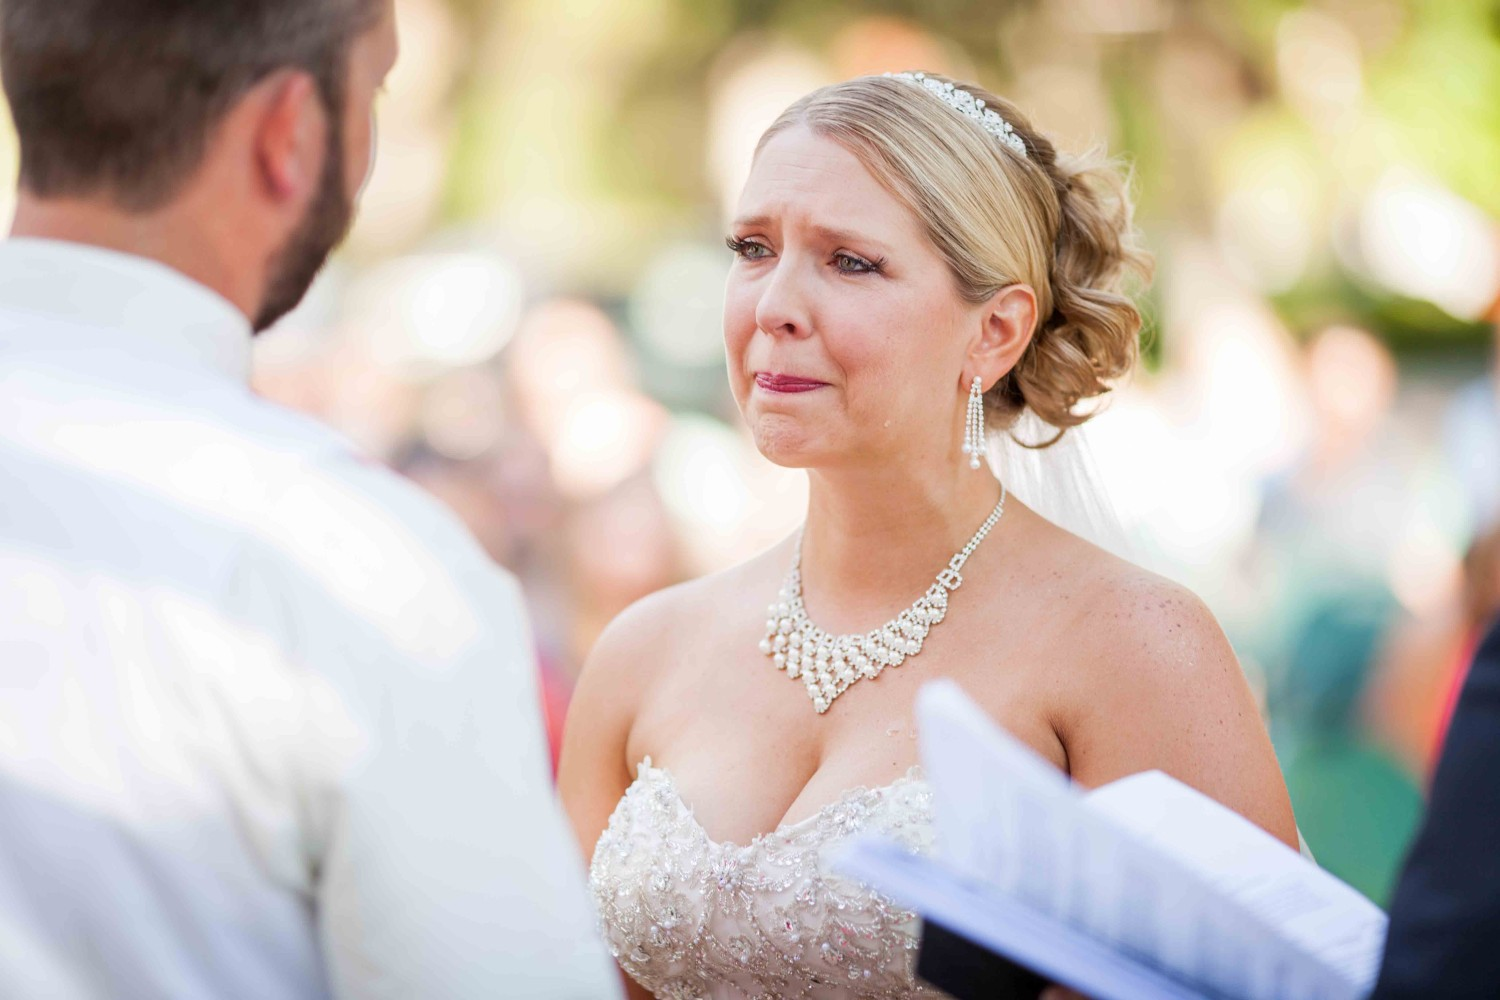 Bride crying during their wedding ceremony vows.